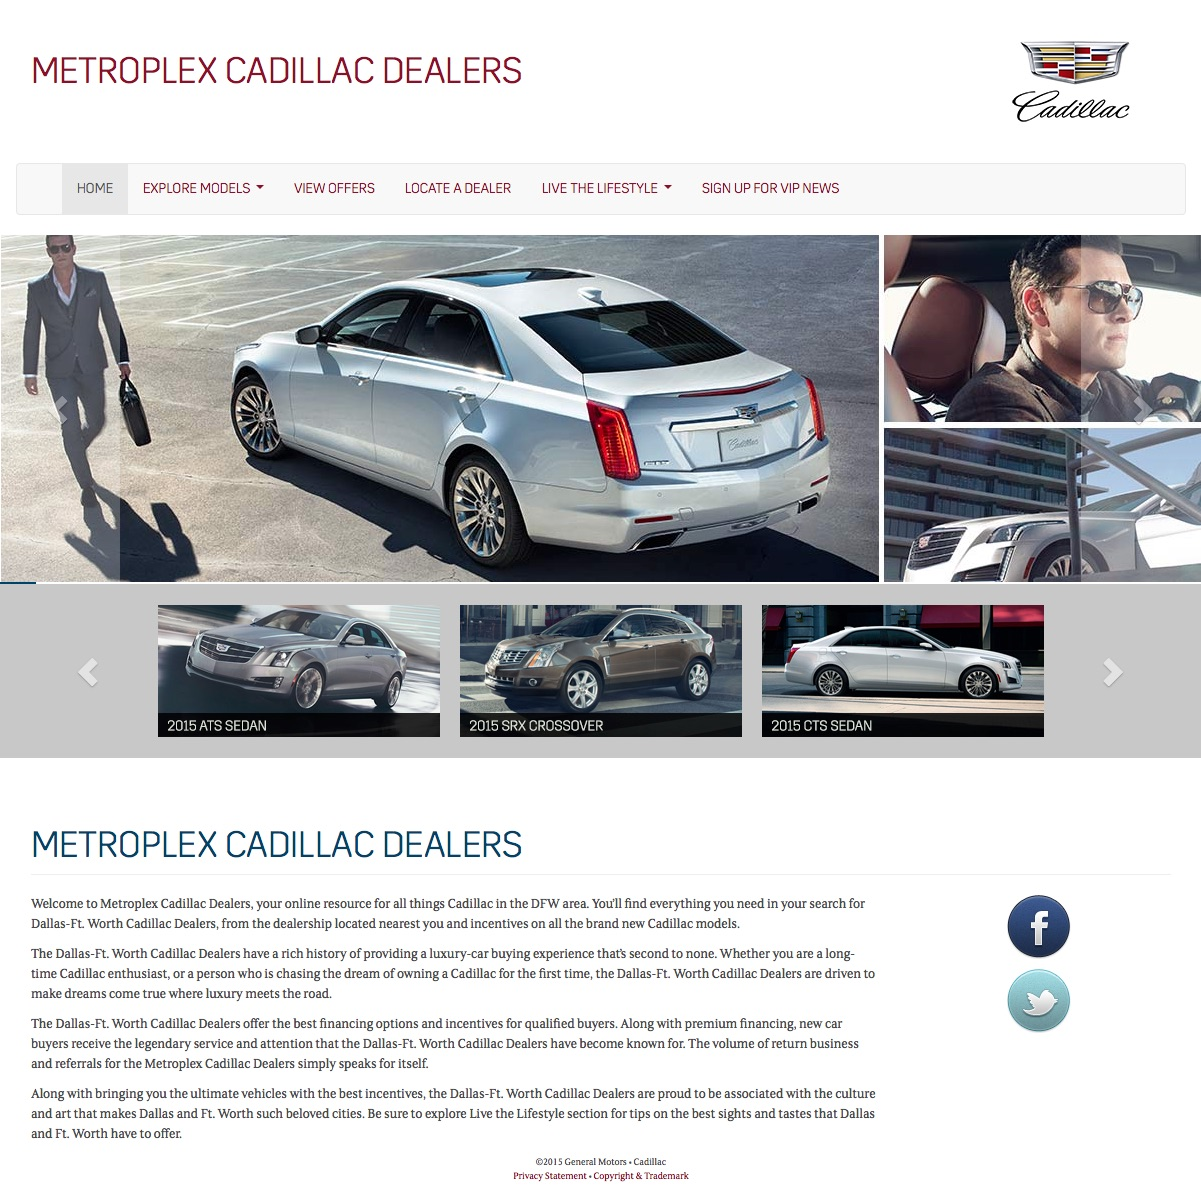 Cadillac Dealership: Martin Retail Group